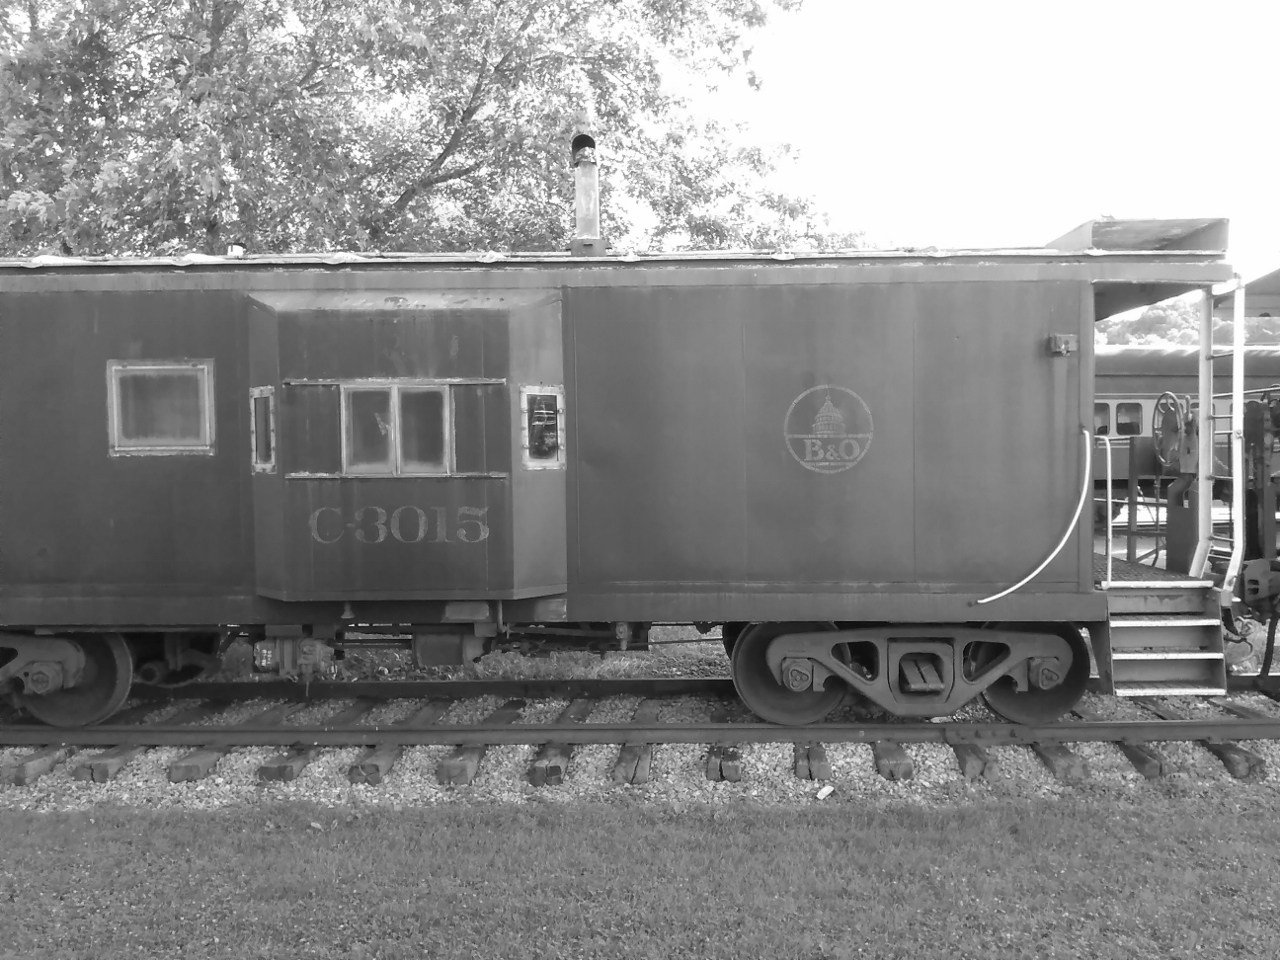 Hocking Valley Scenic Railway - BW 6-14-2018 6-35-00 PM